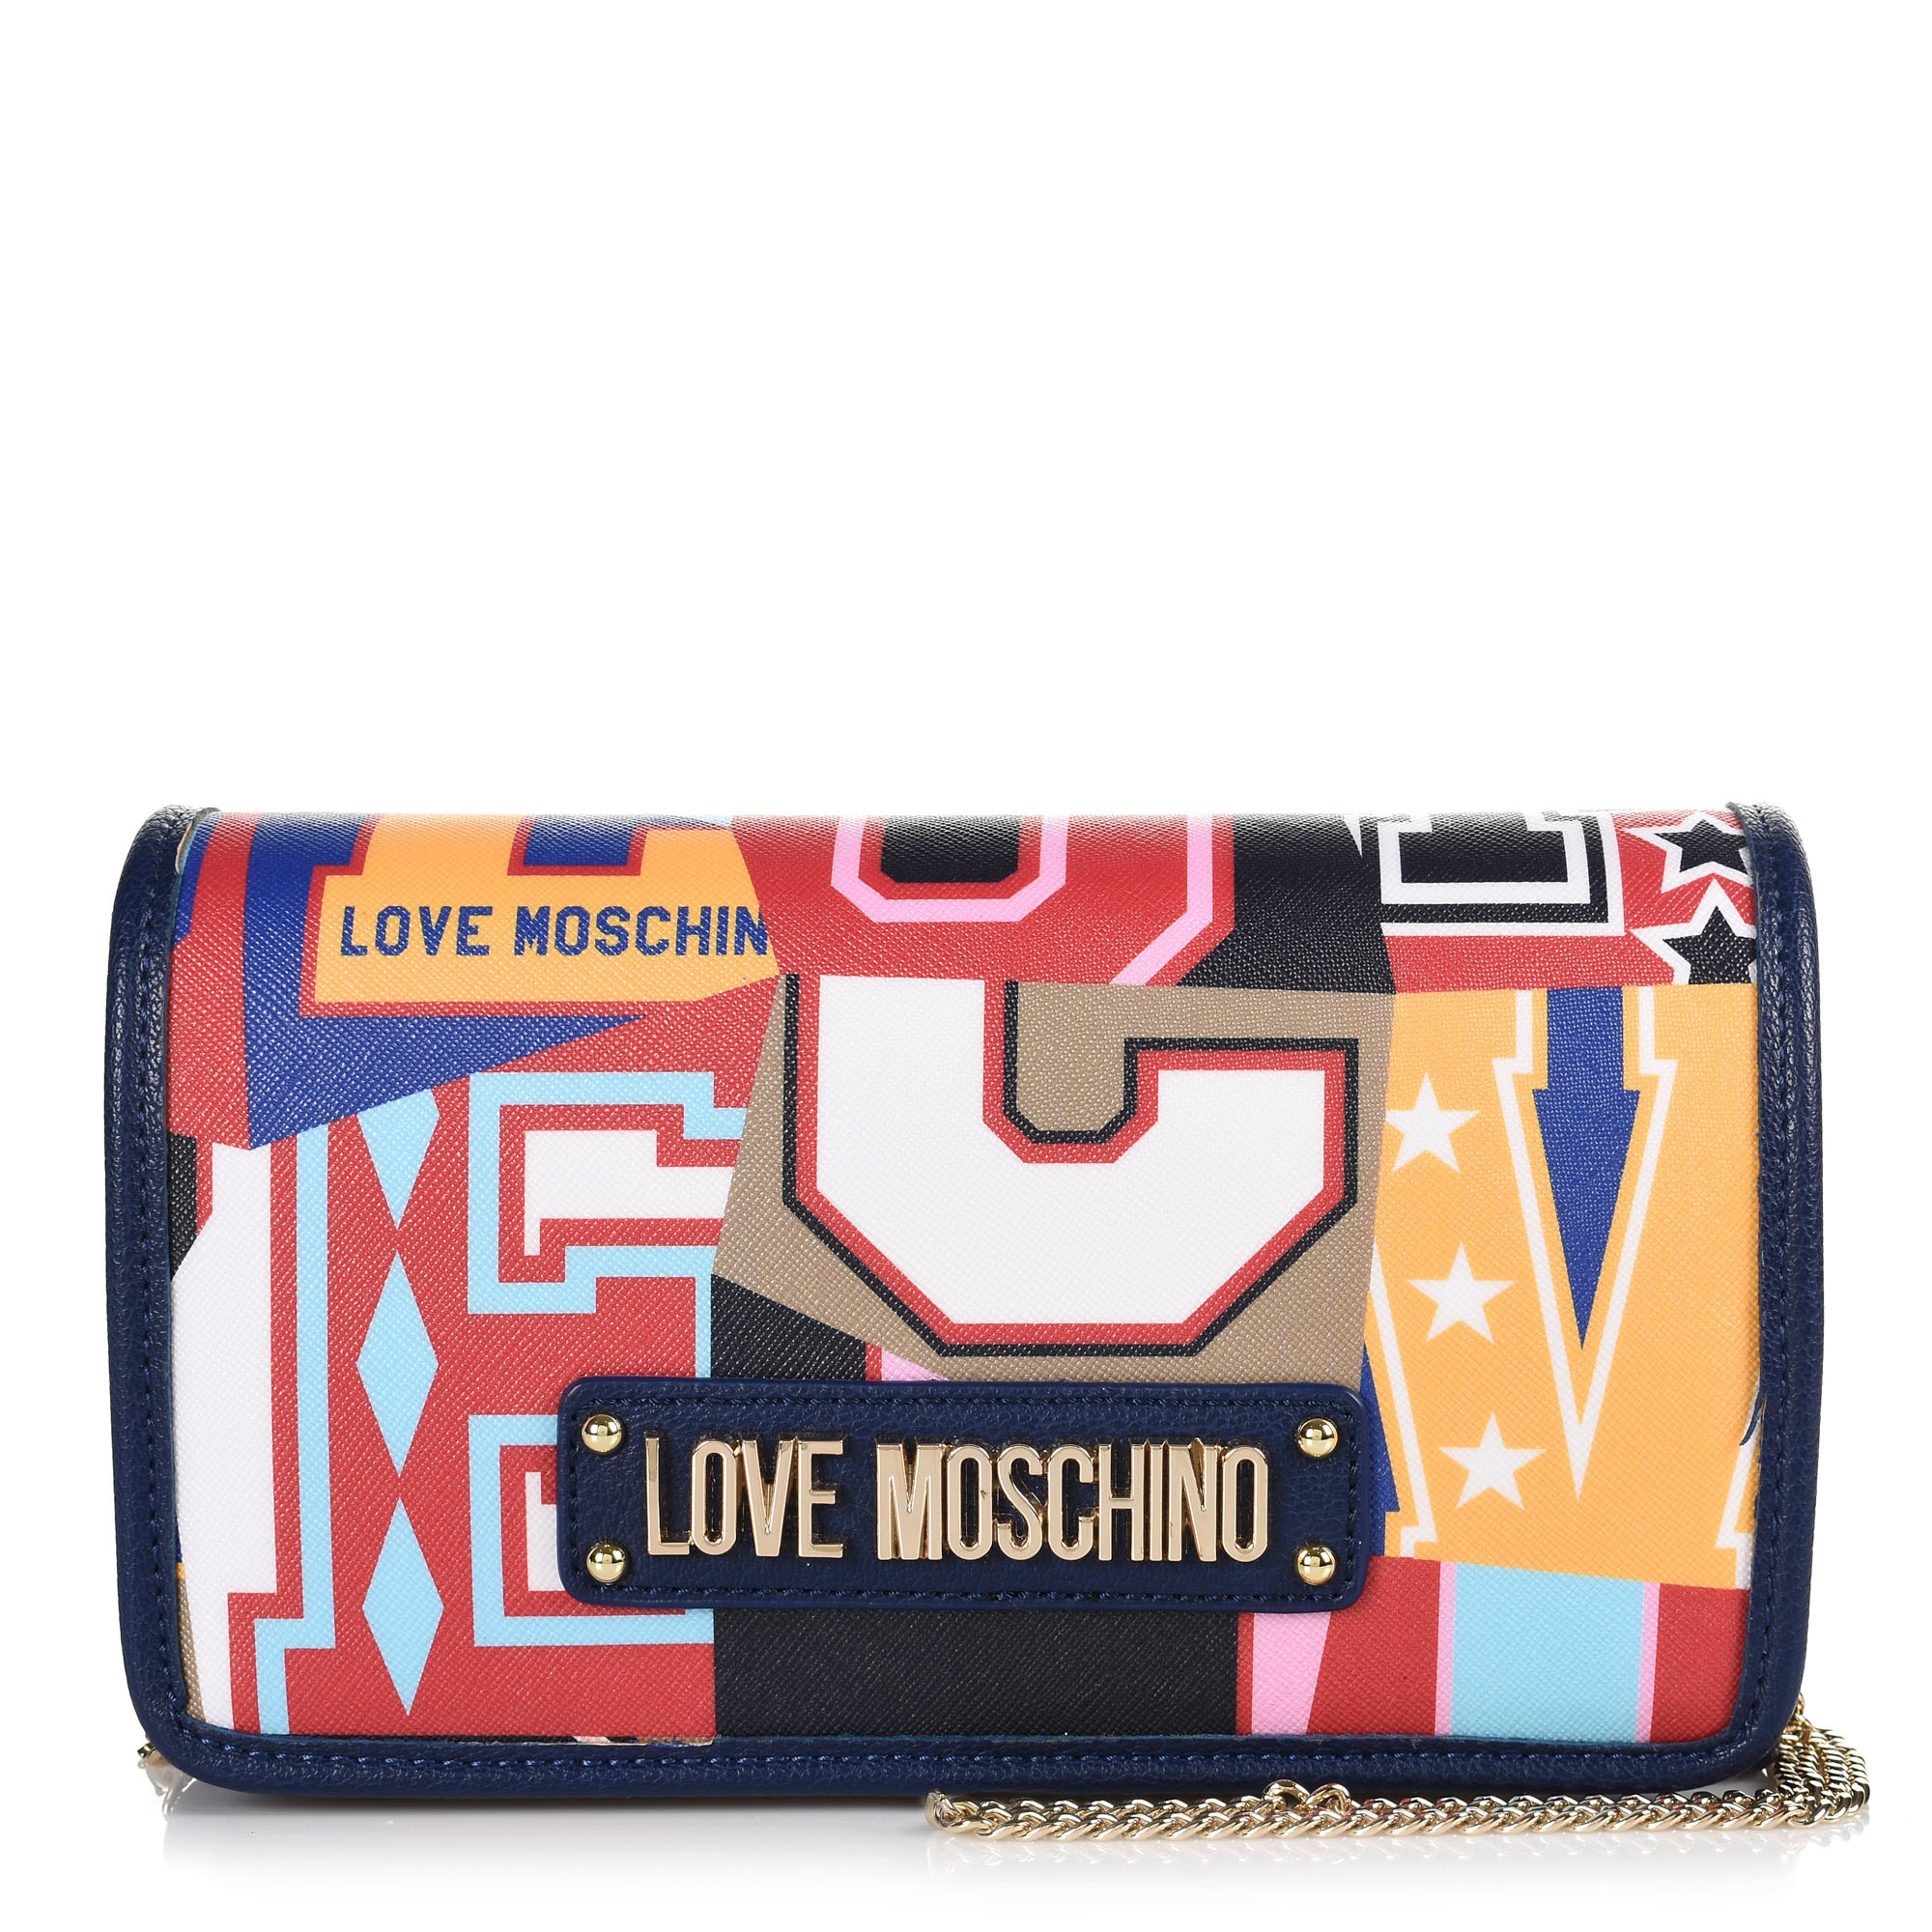 Τσαντάκι Ώμου-Χιαστί Love Moschino Graphic Saffiano JC4054PP17LE